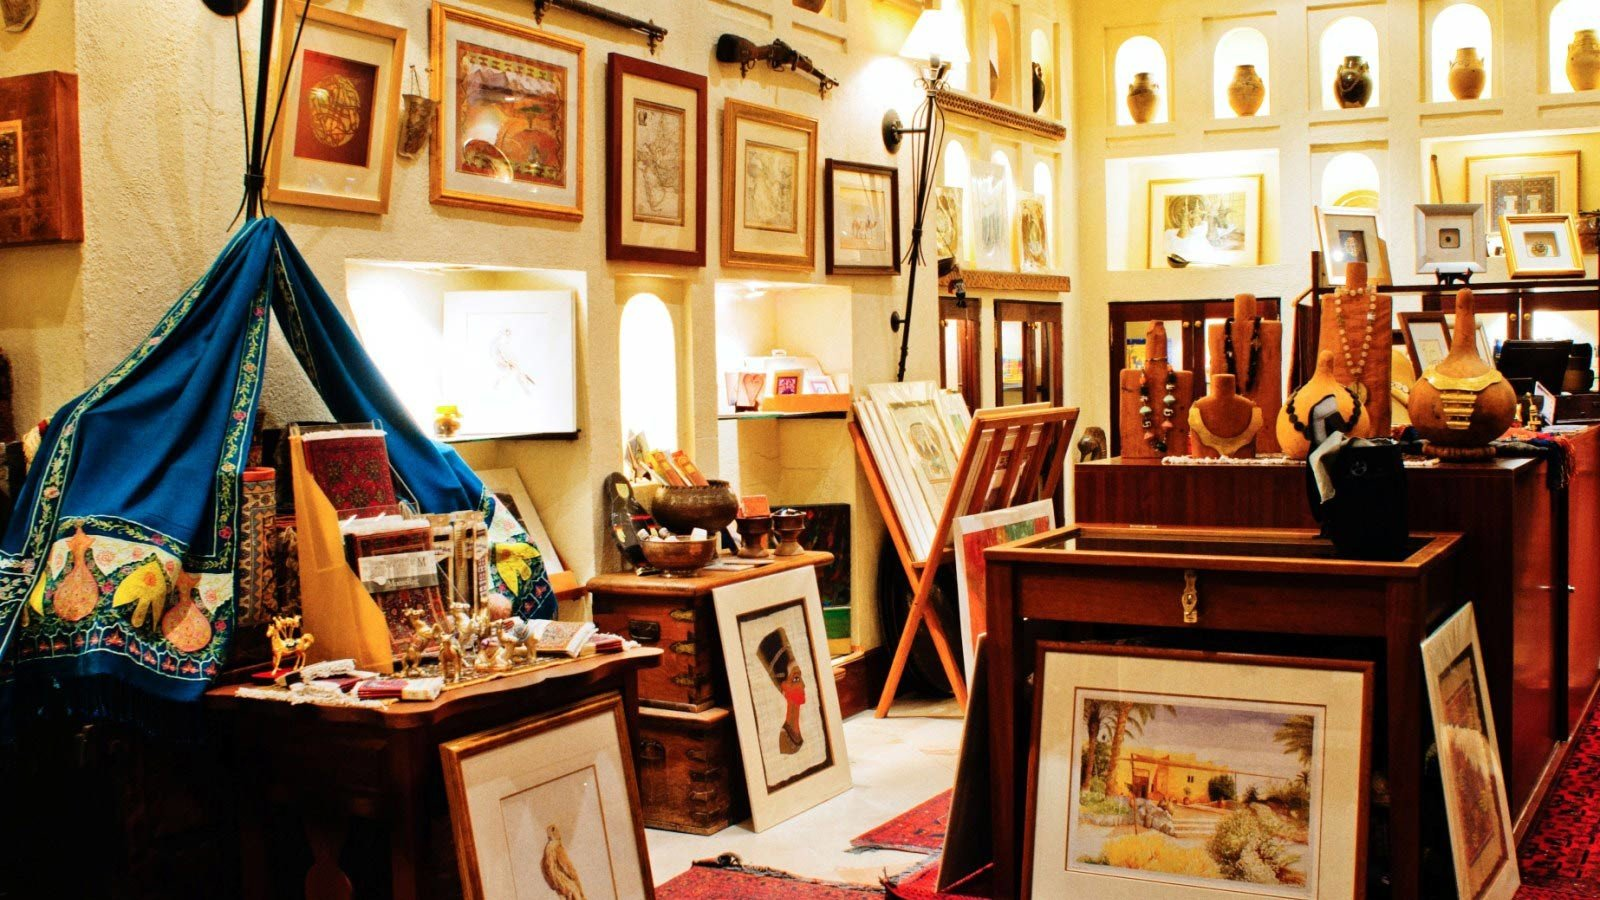 Boutique antiquarian shopping retail cluttered